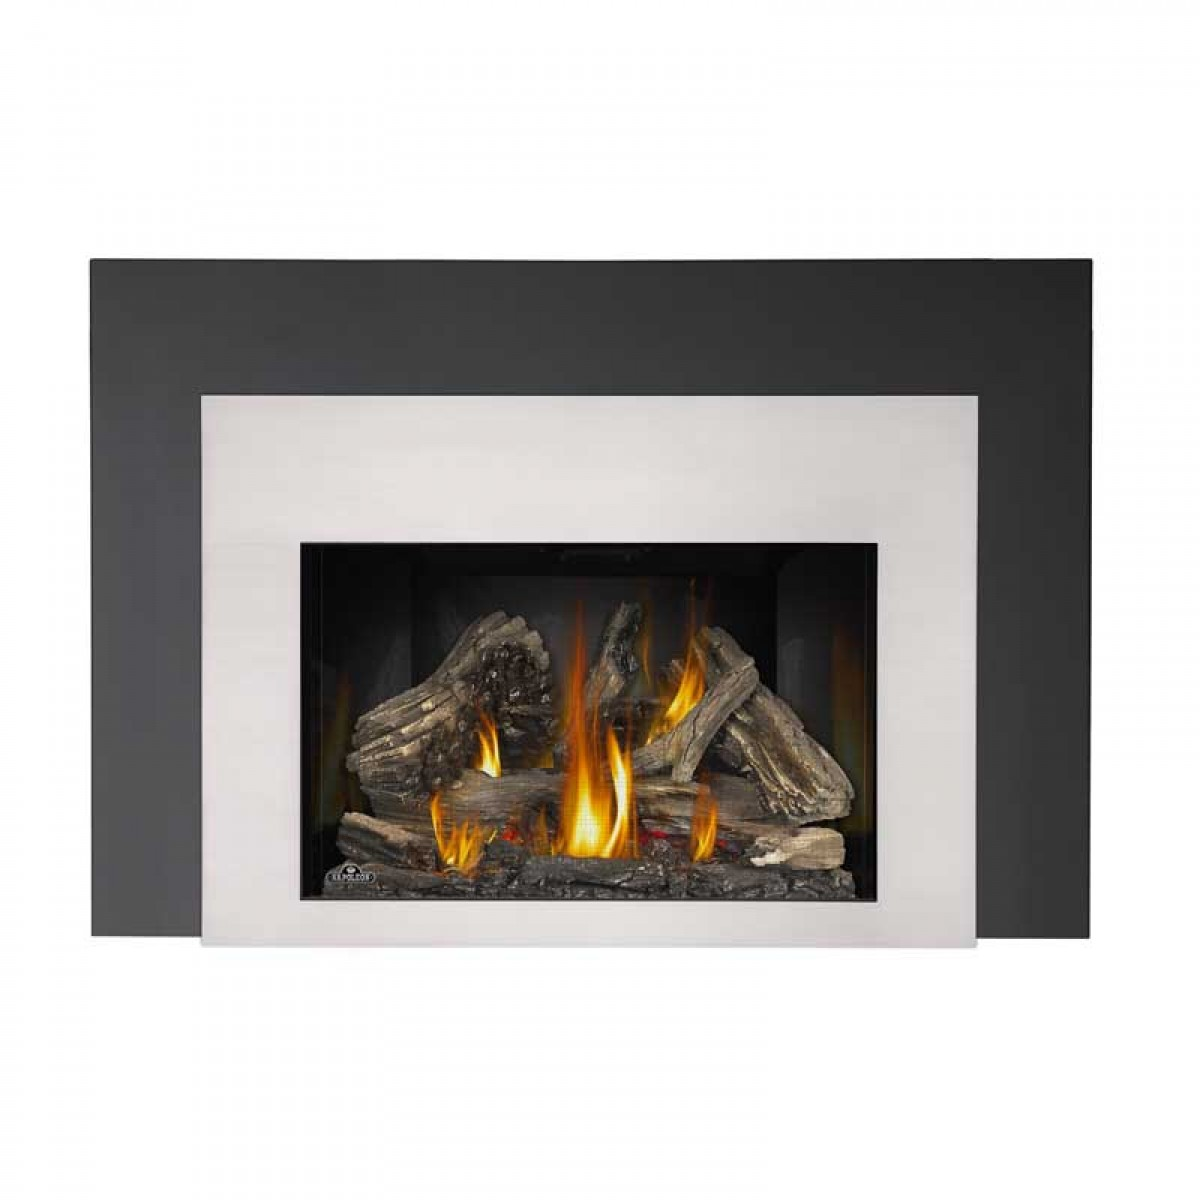 Napoleon XIR4N 1 Deluxe Natural Gas fireplace insert